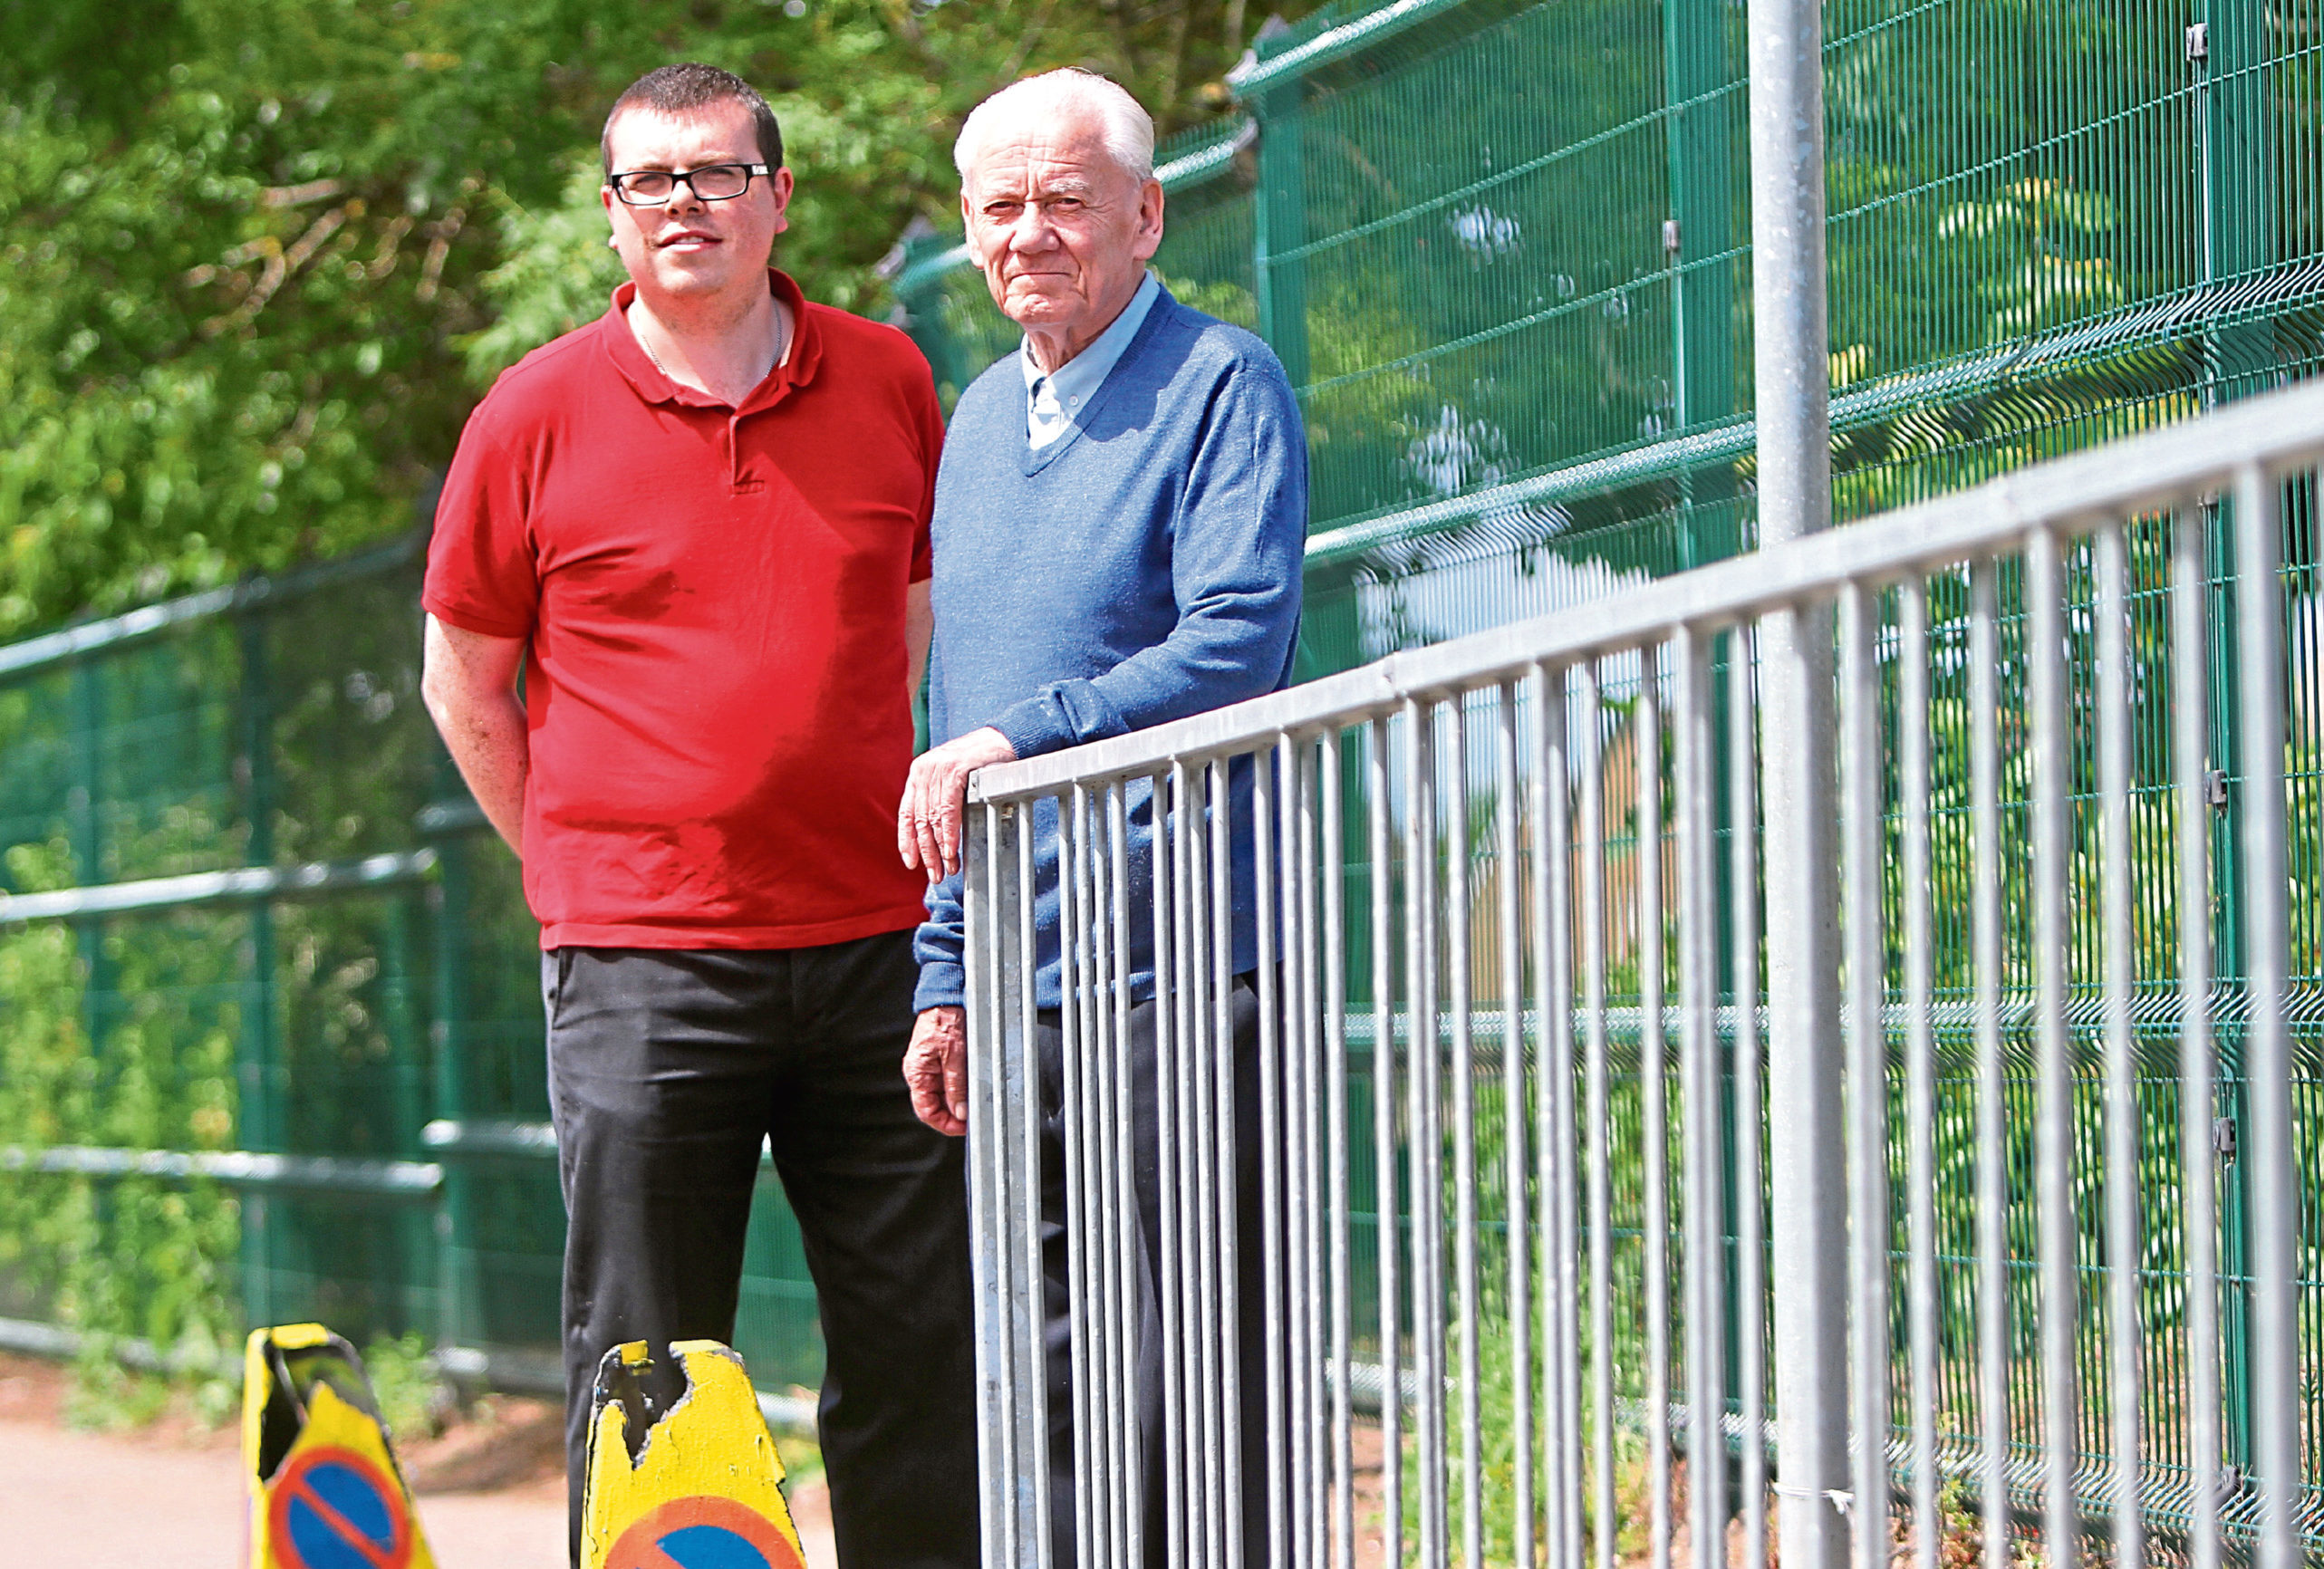 Community council member Simon Redmond and chairman Ron Neave outside the school.